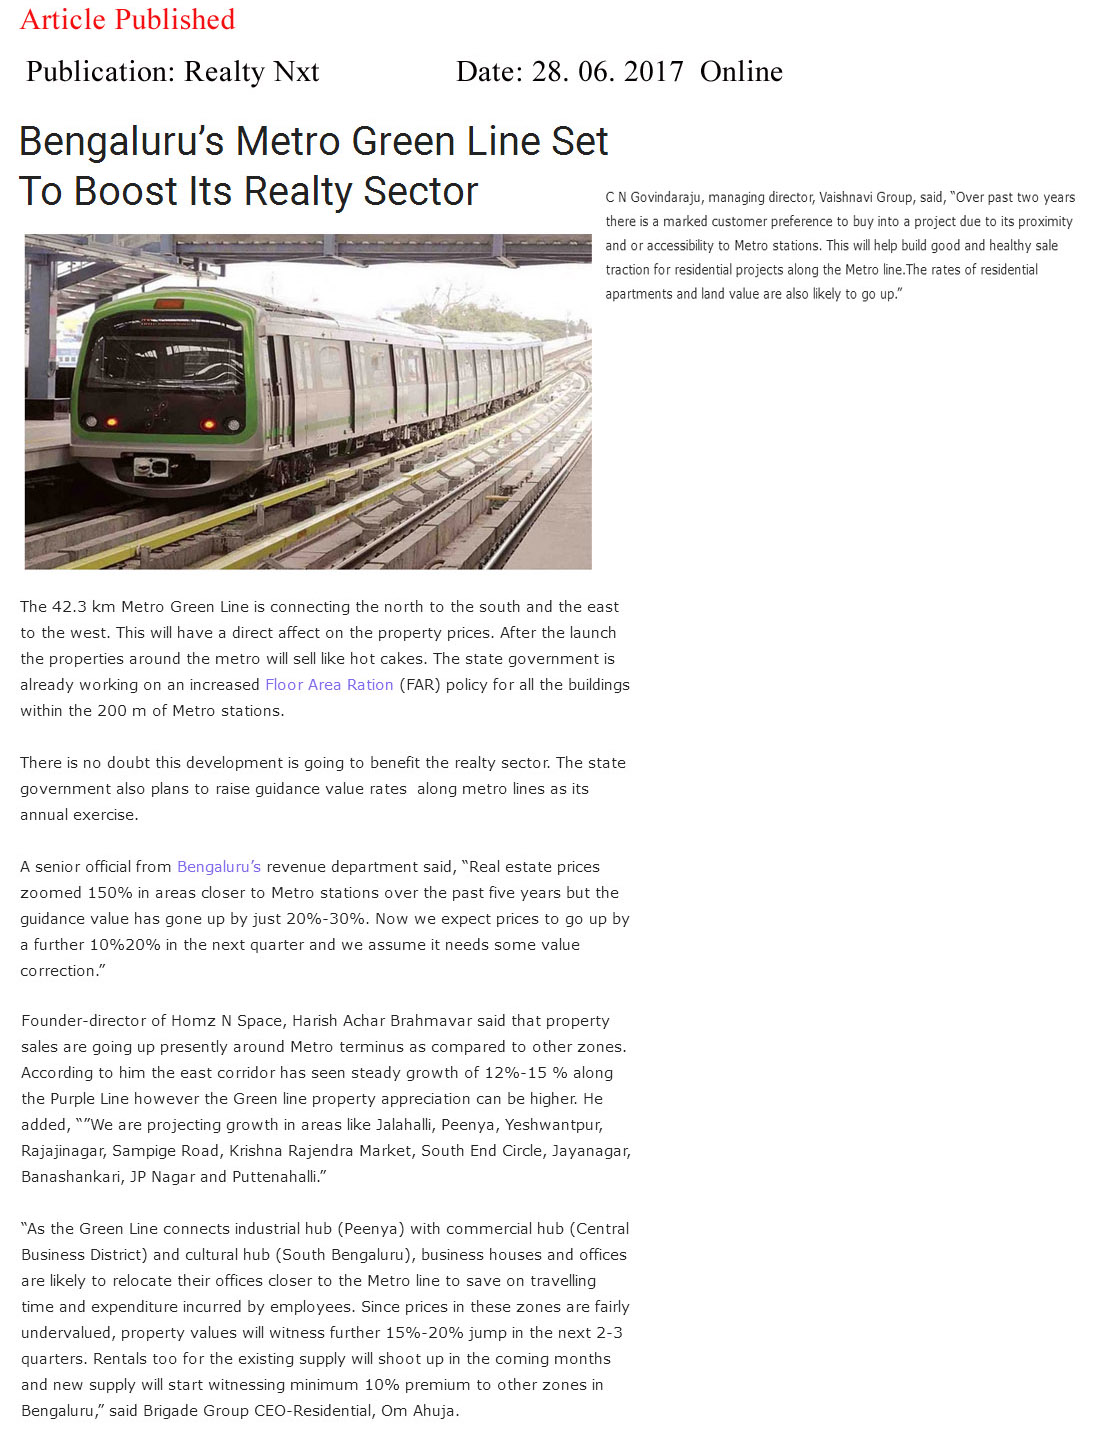 Bangalore's Metro Green line set to Boost Its Realty Sector—Realty Nxt-Online